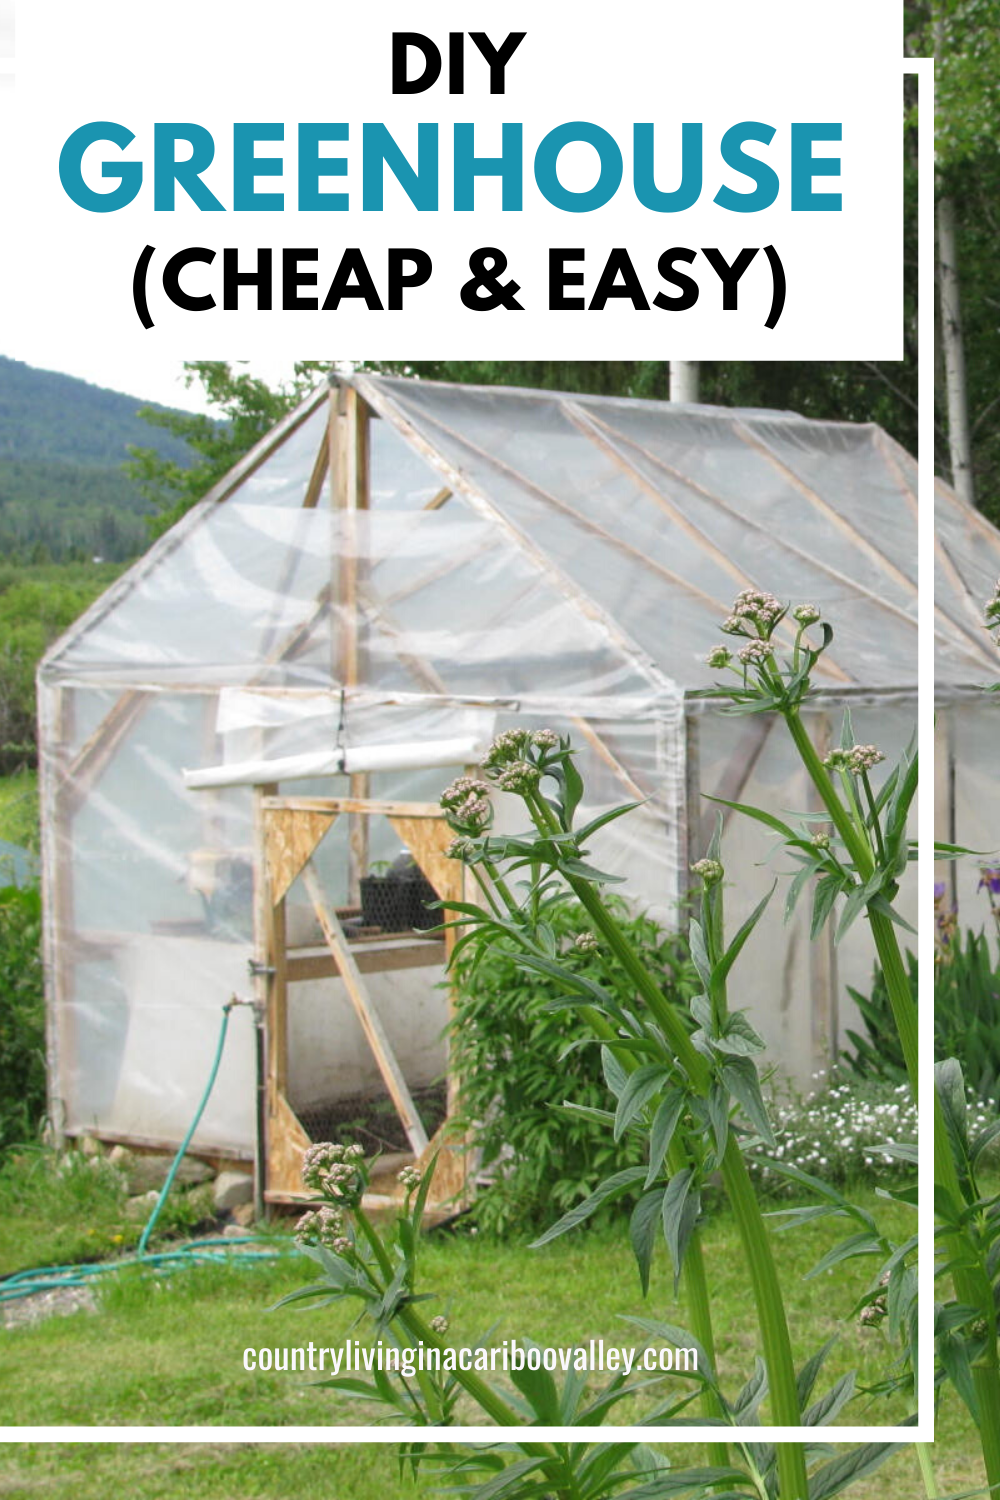 How To Build A Backyard Greenhouse For Under 200 Diy Greenhouse Diy Greenhouse Plans Greenhouse